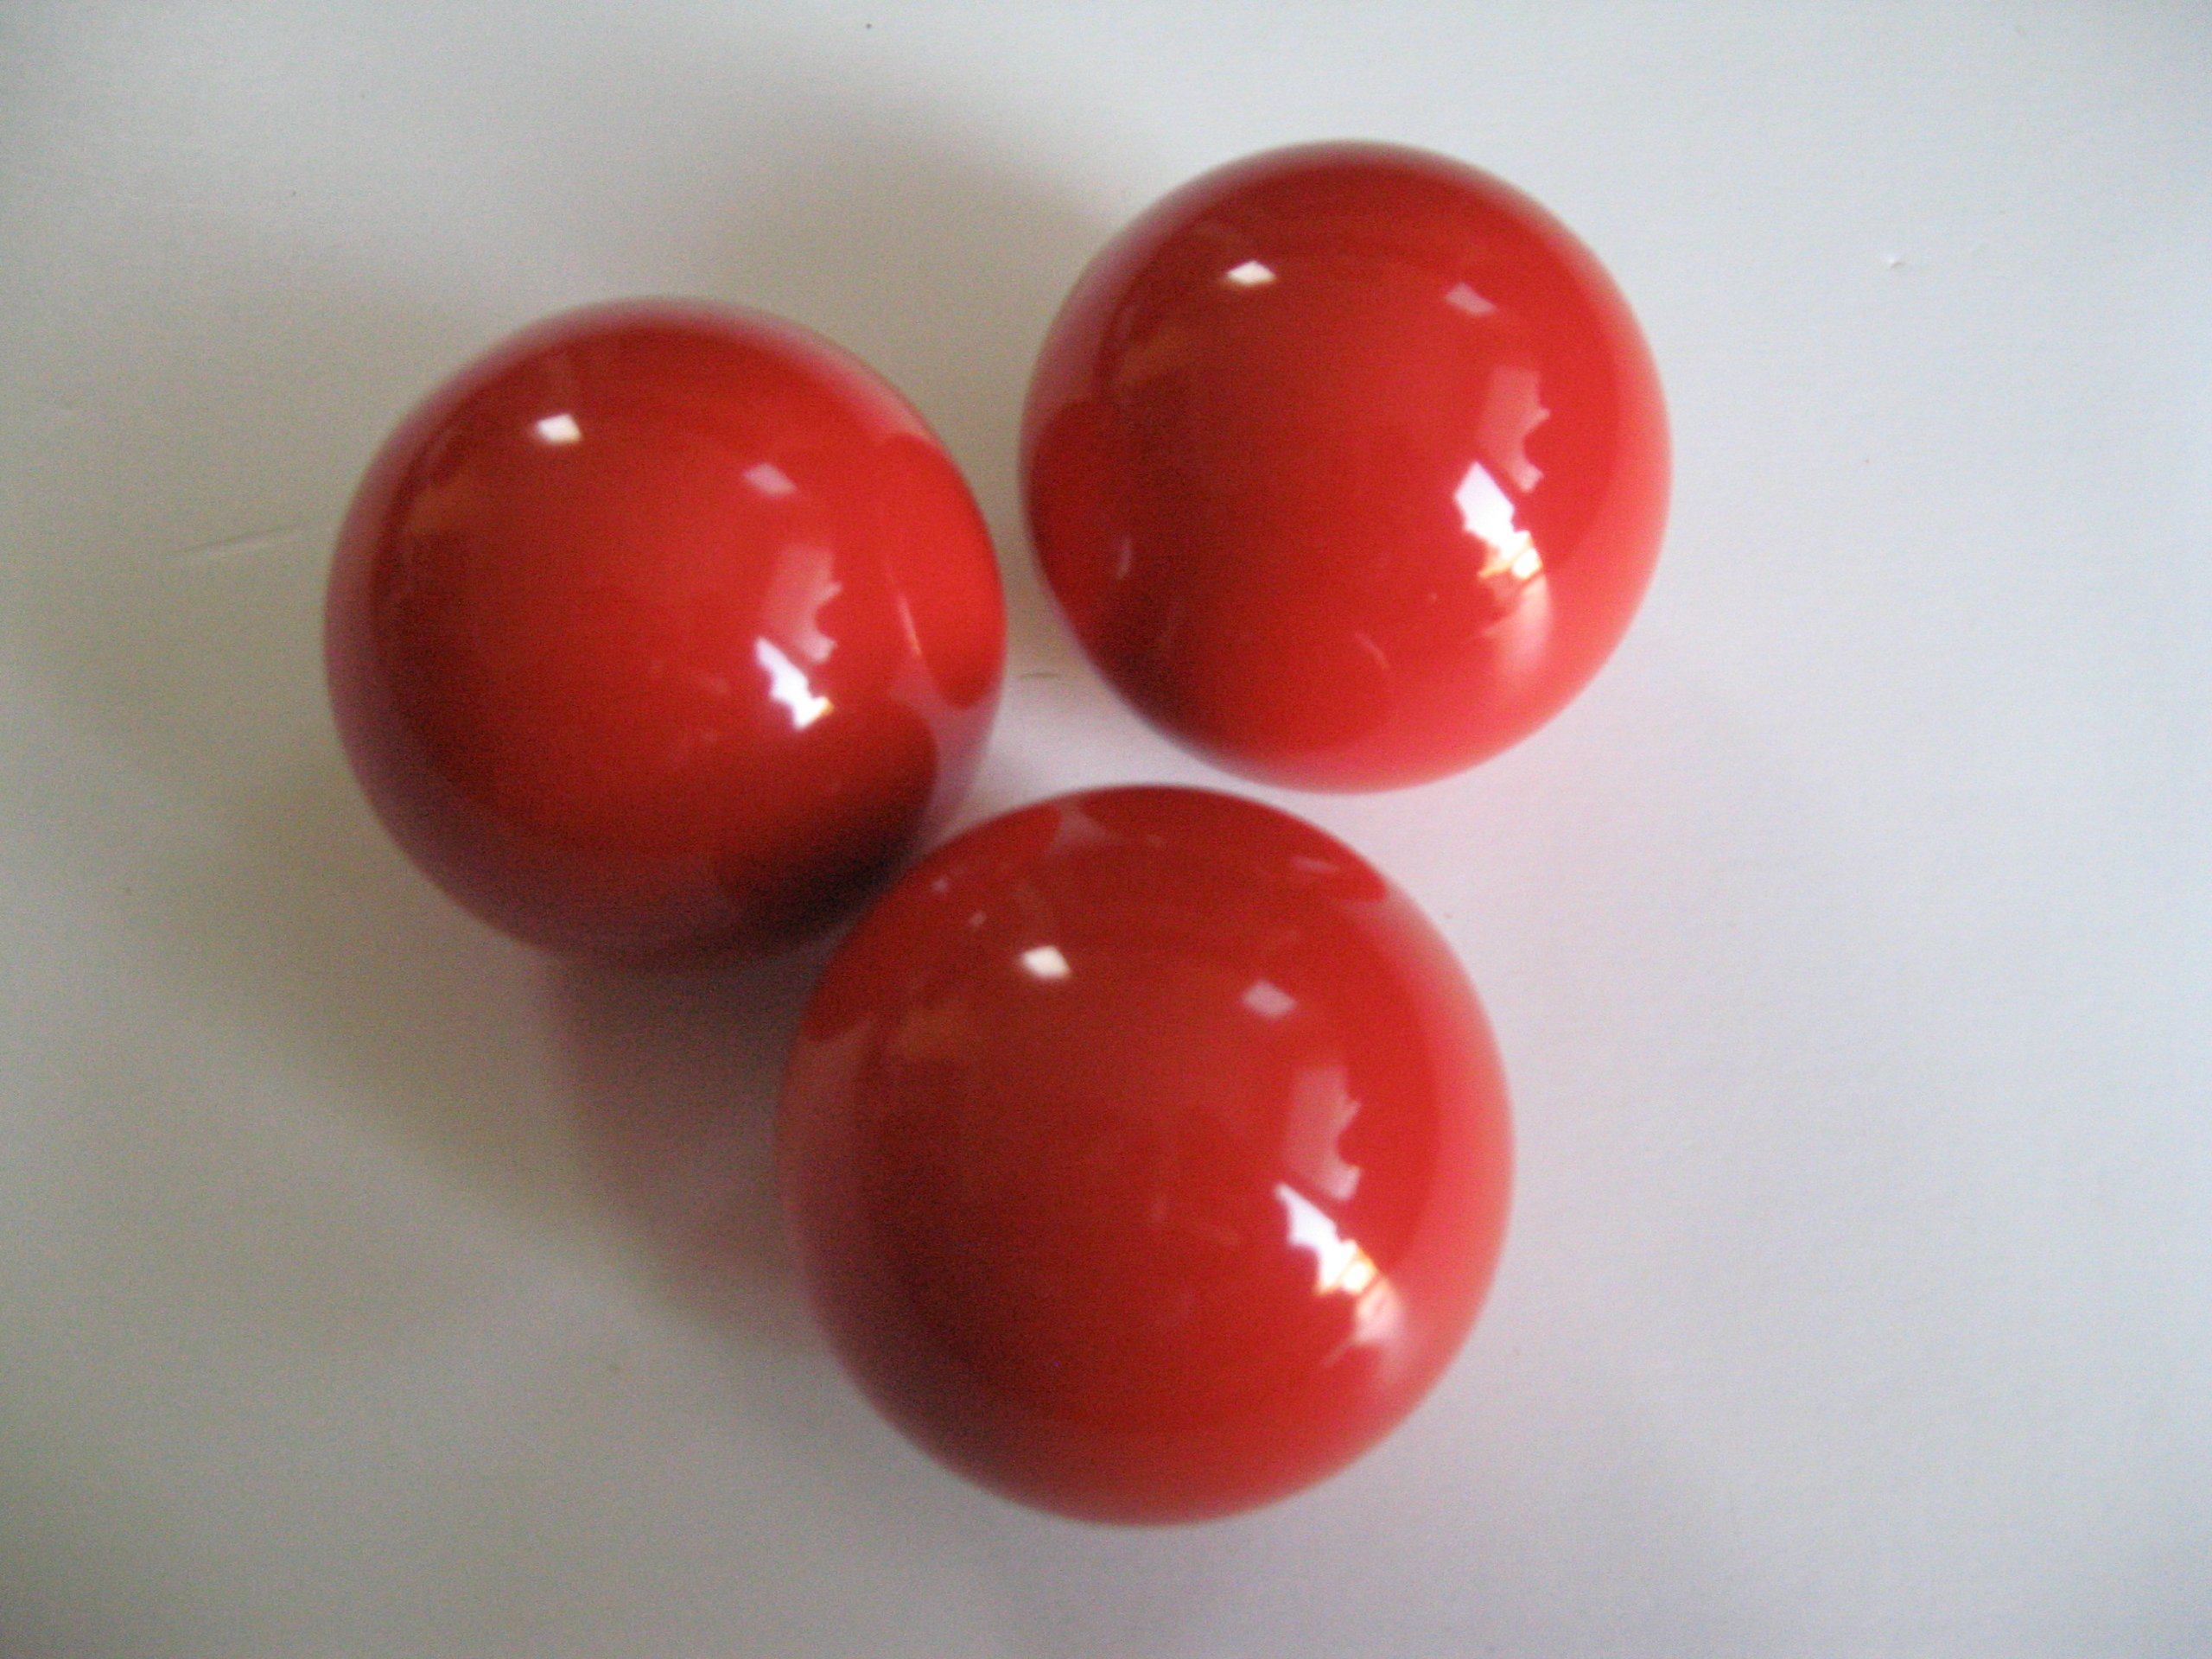 EPCO Bocce Red Pallinos - 3 Pack by Epco